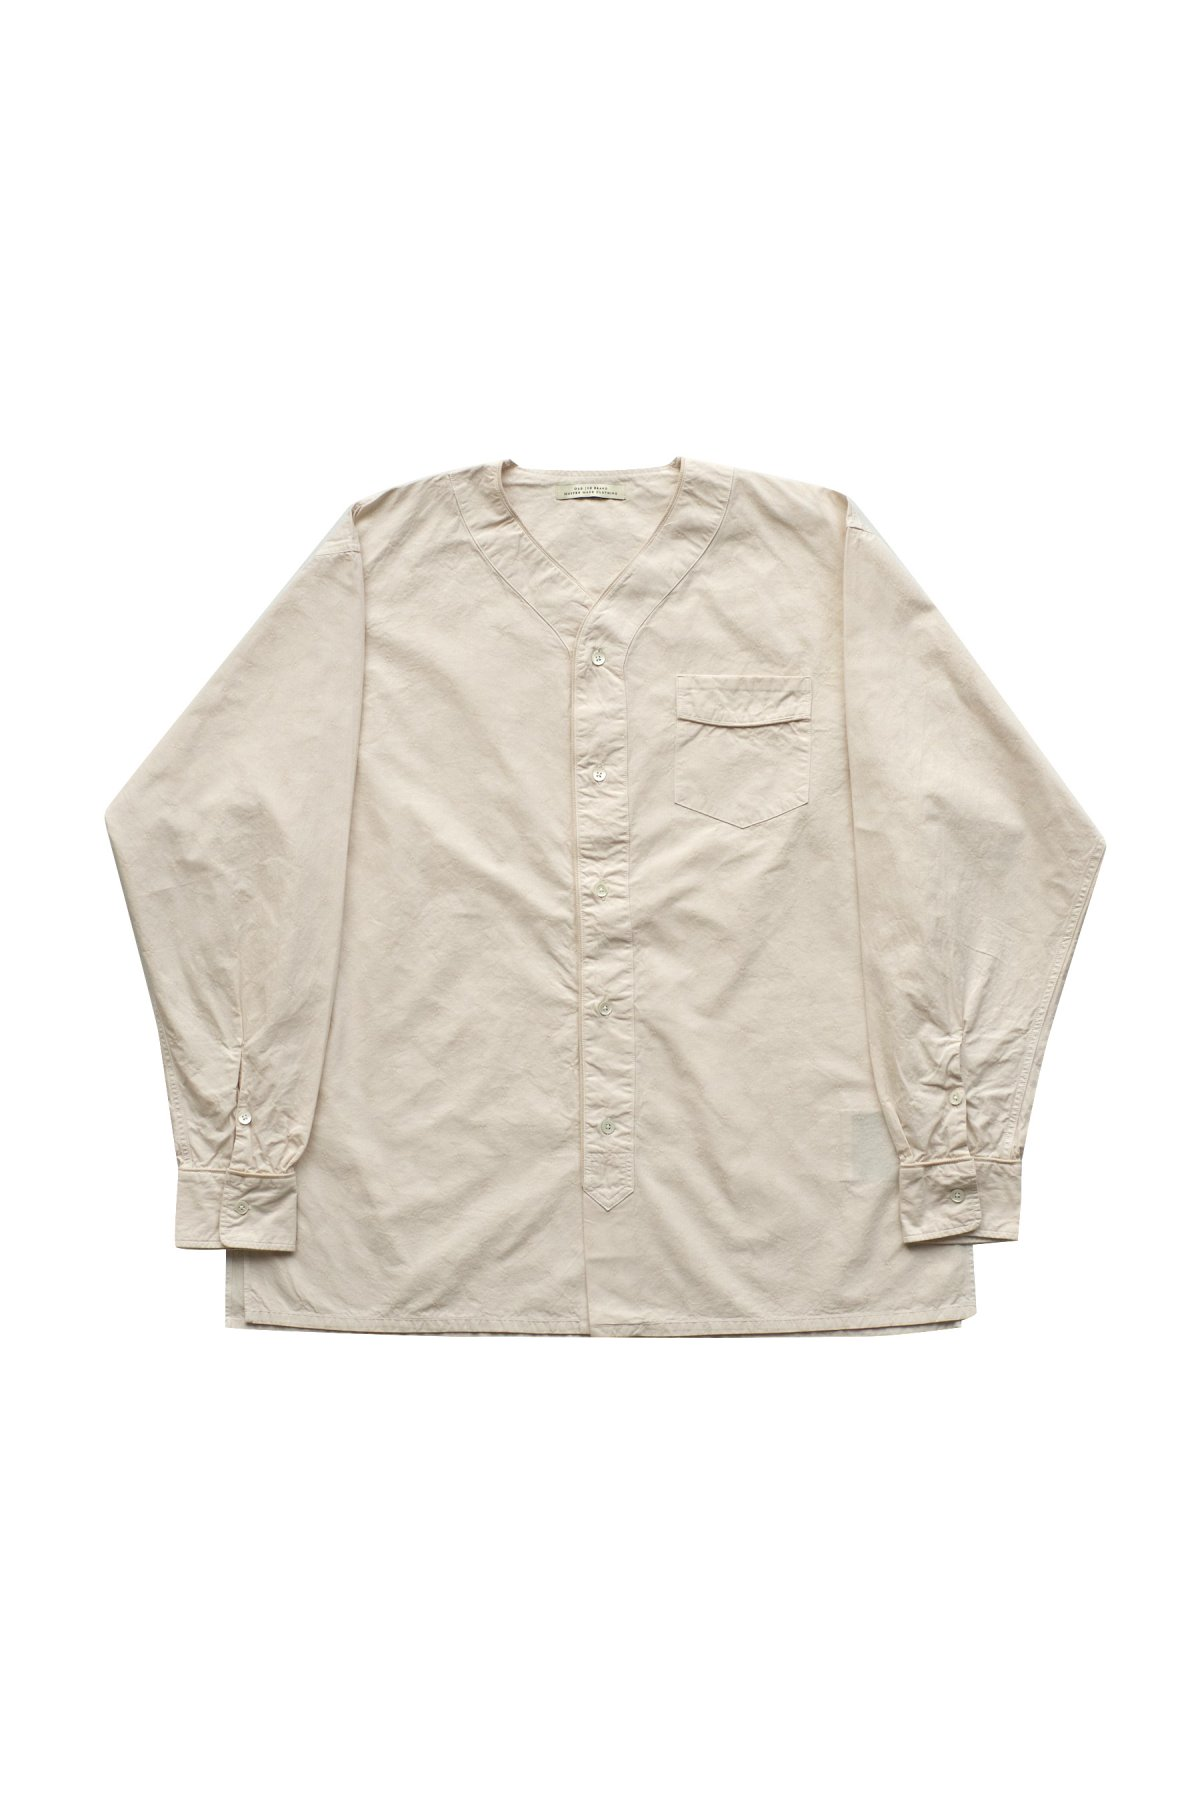 OLD JOE - SLEEPING NECK SHIRTS - BONE - PRICE 28,600 tax-in